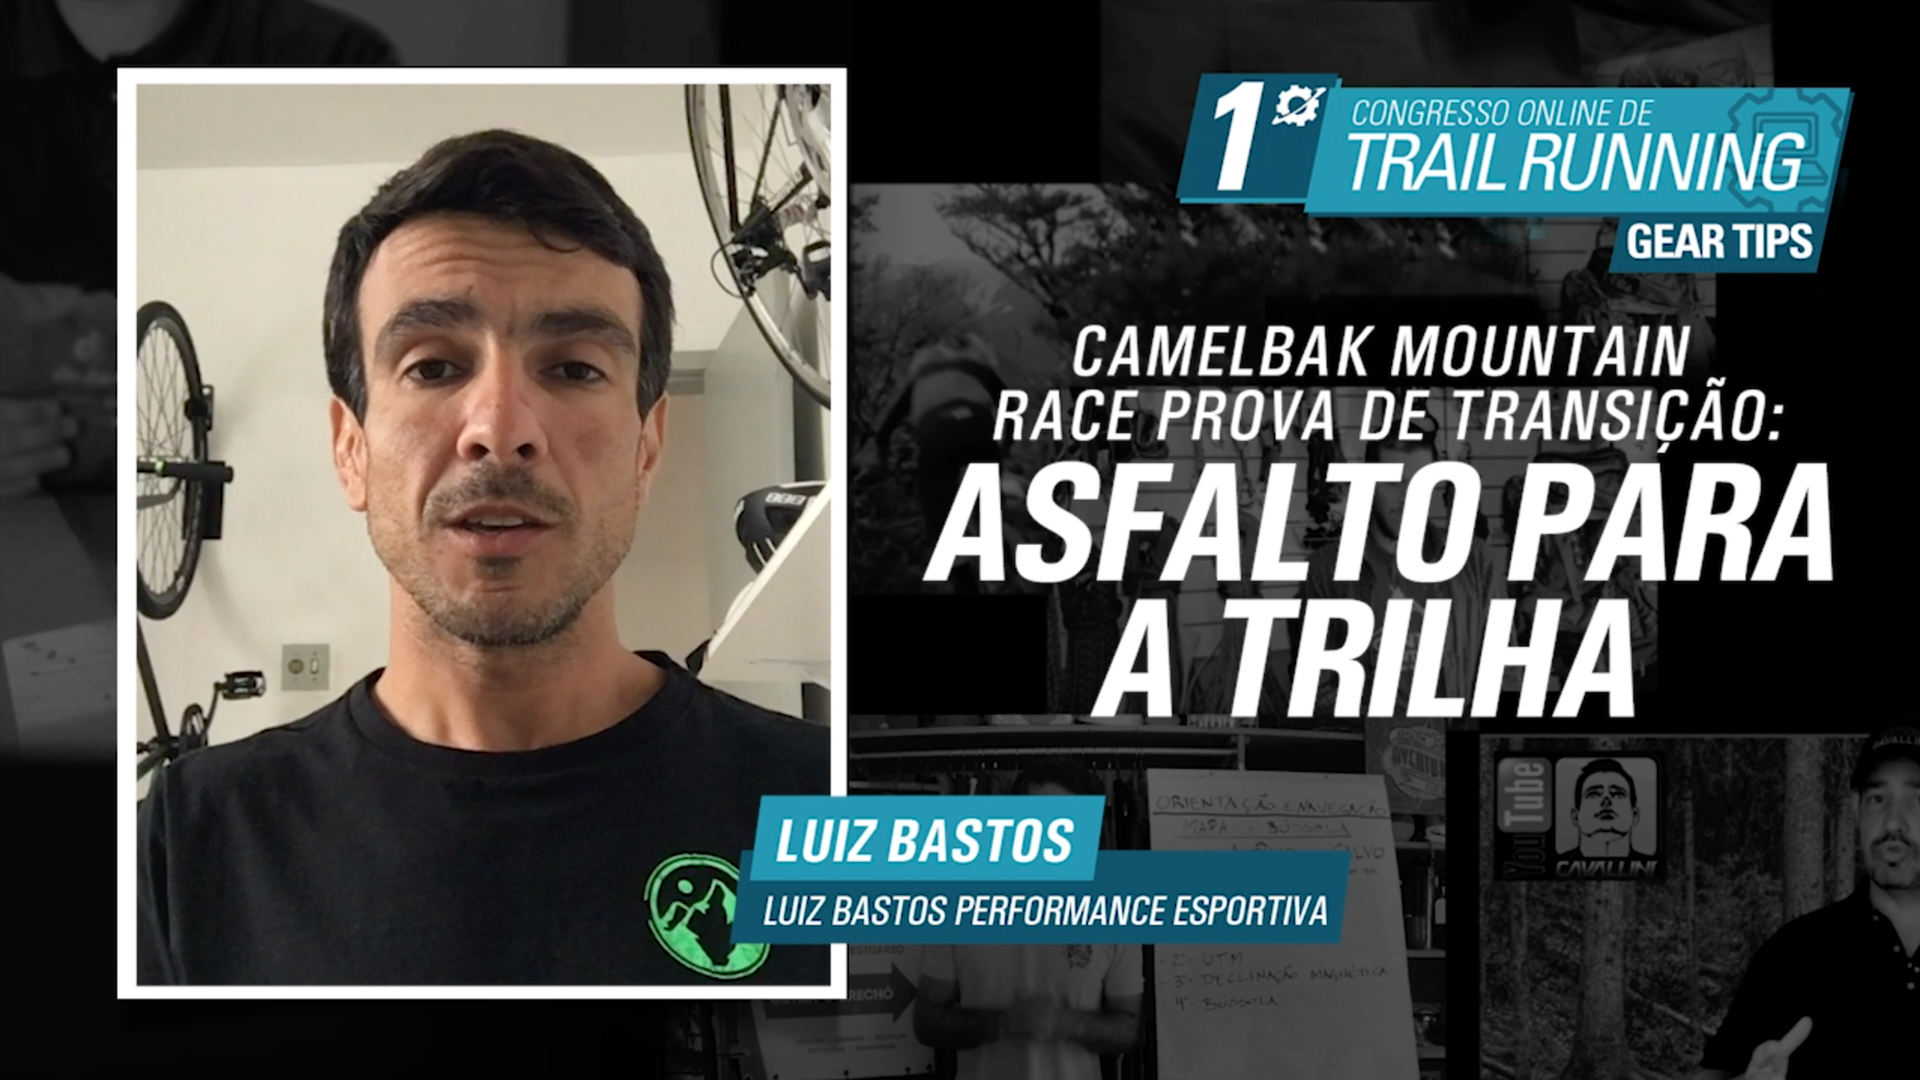 CamelBak Mountain Race - Luiz Bastos